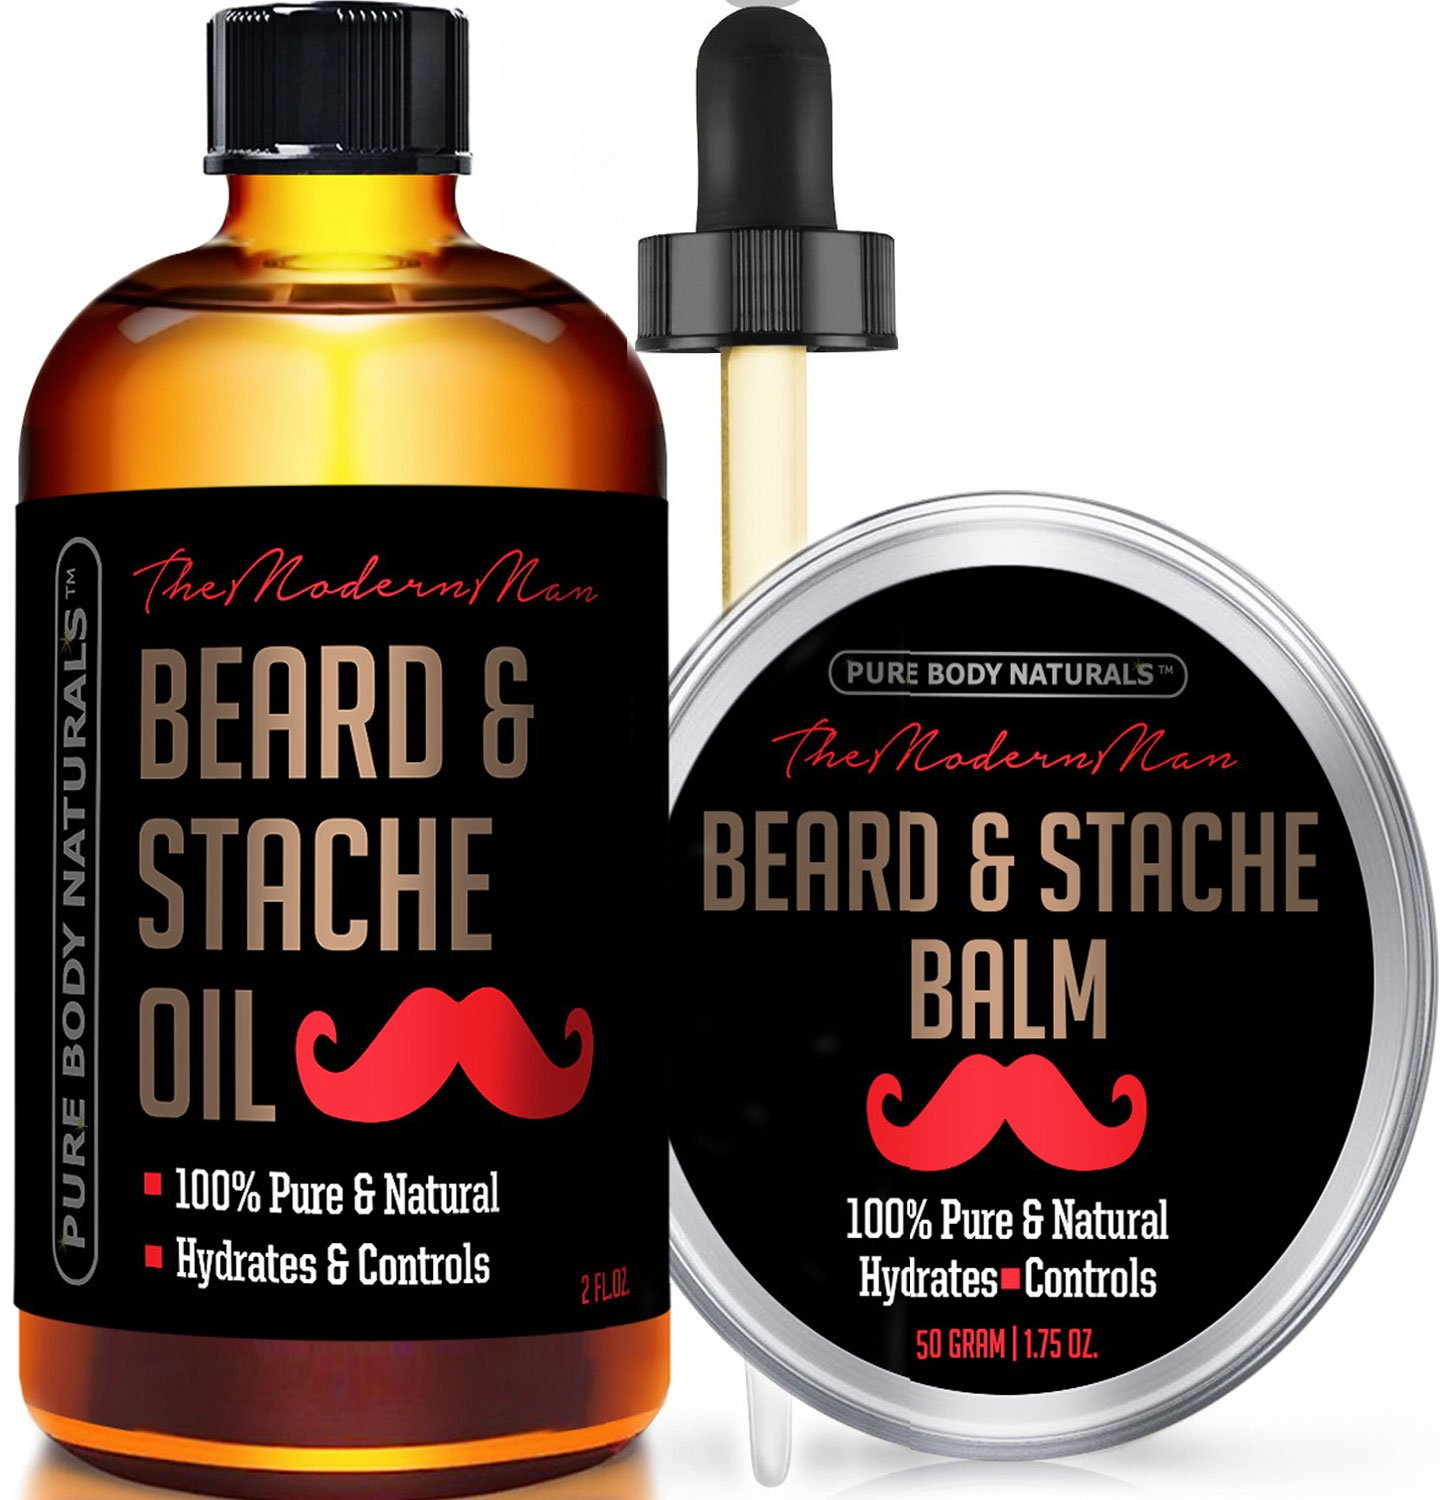 Beard Oil and Beard Balm Kit for Mustache and Beard Care - Tame, Condition and Moisturize with this Premium Grooming Set by Pure Body Naturals, Oil (2 fluid ounces) & Balm